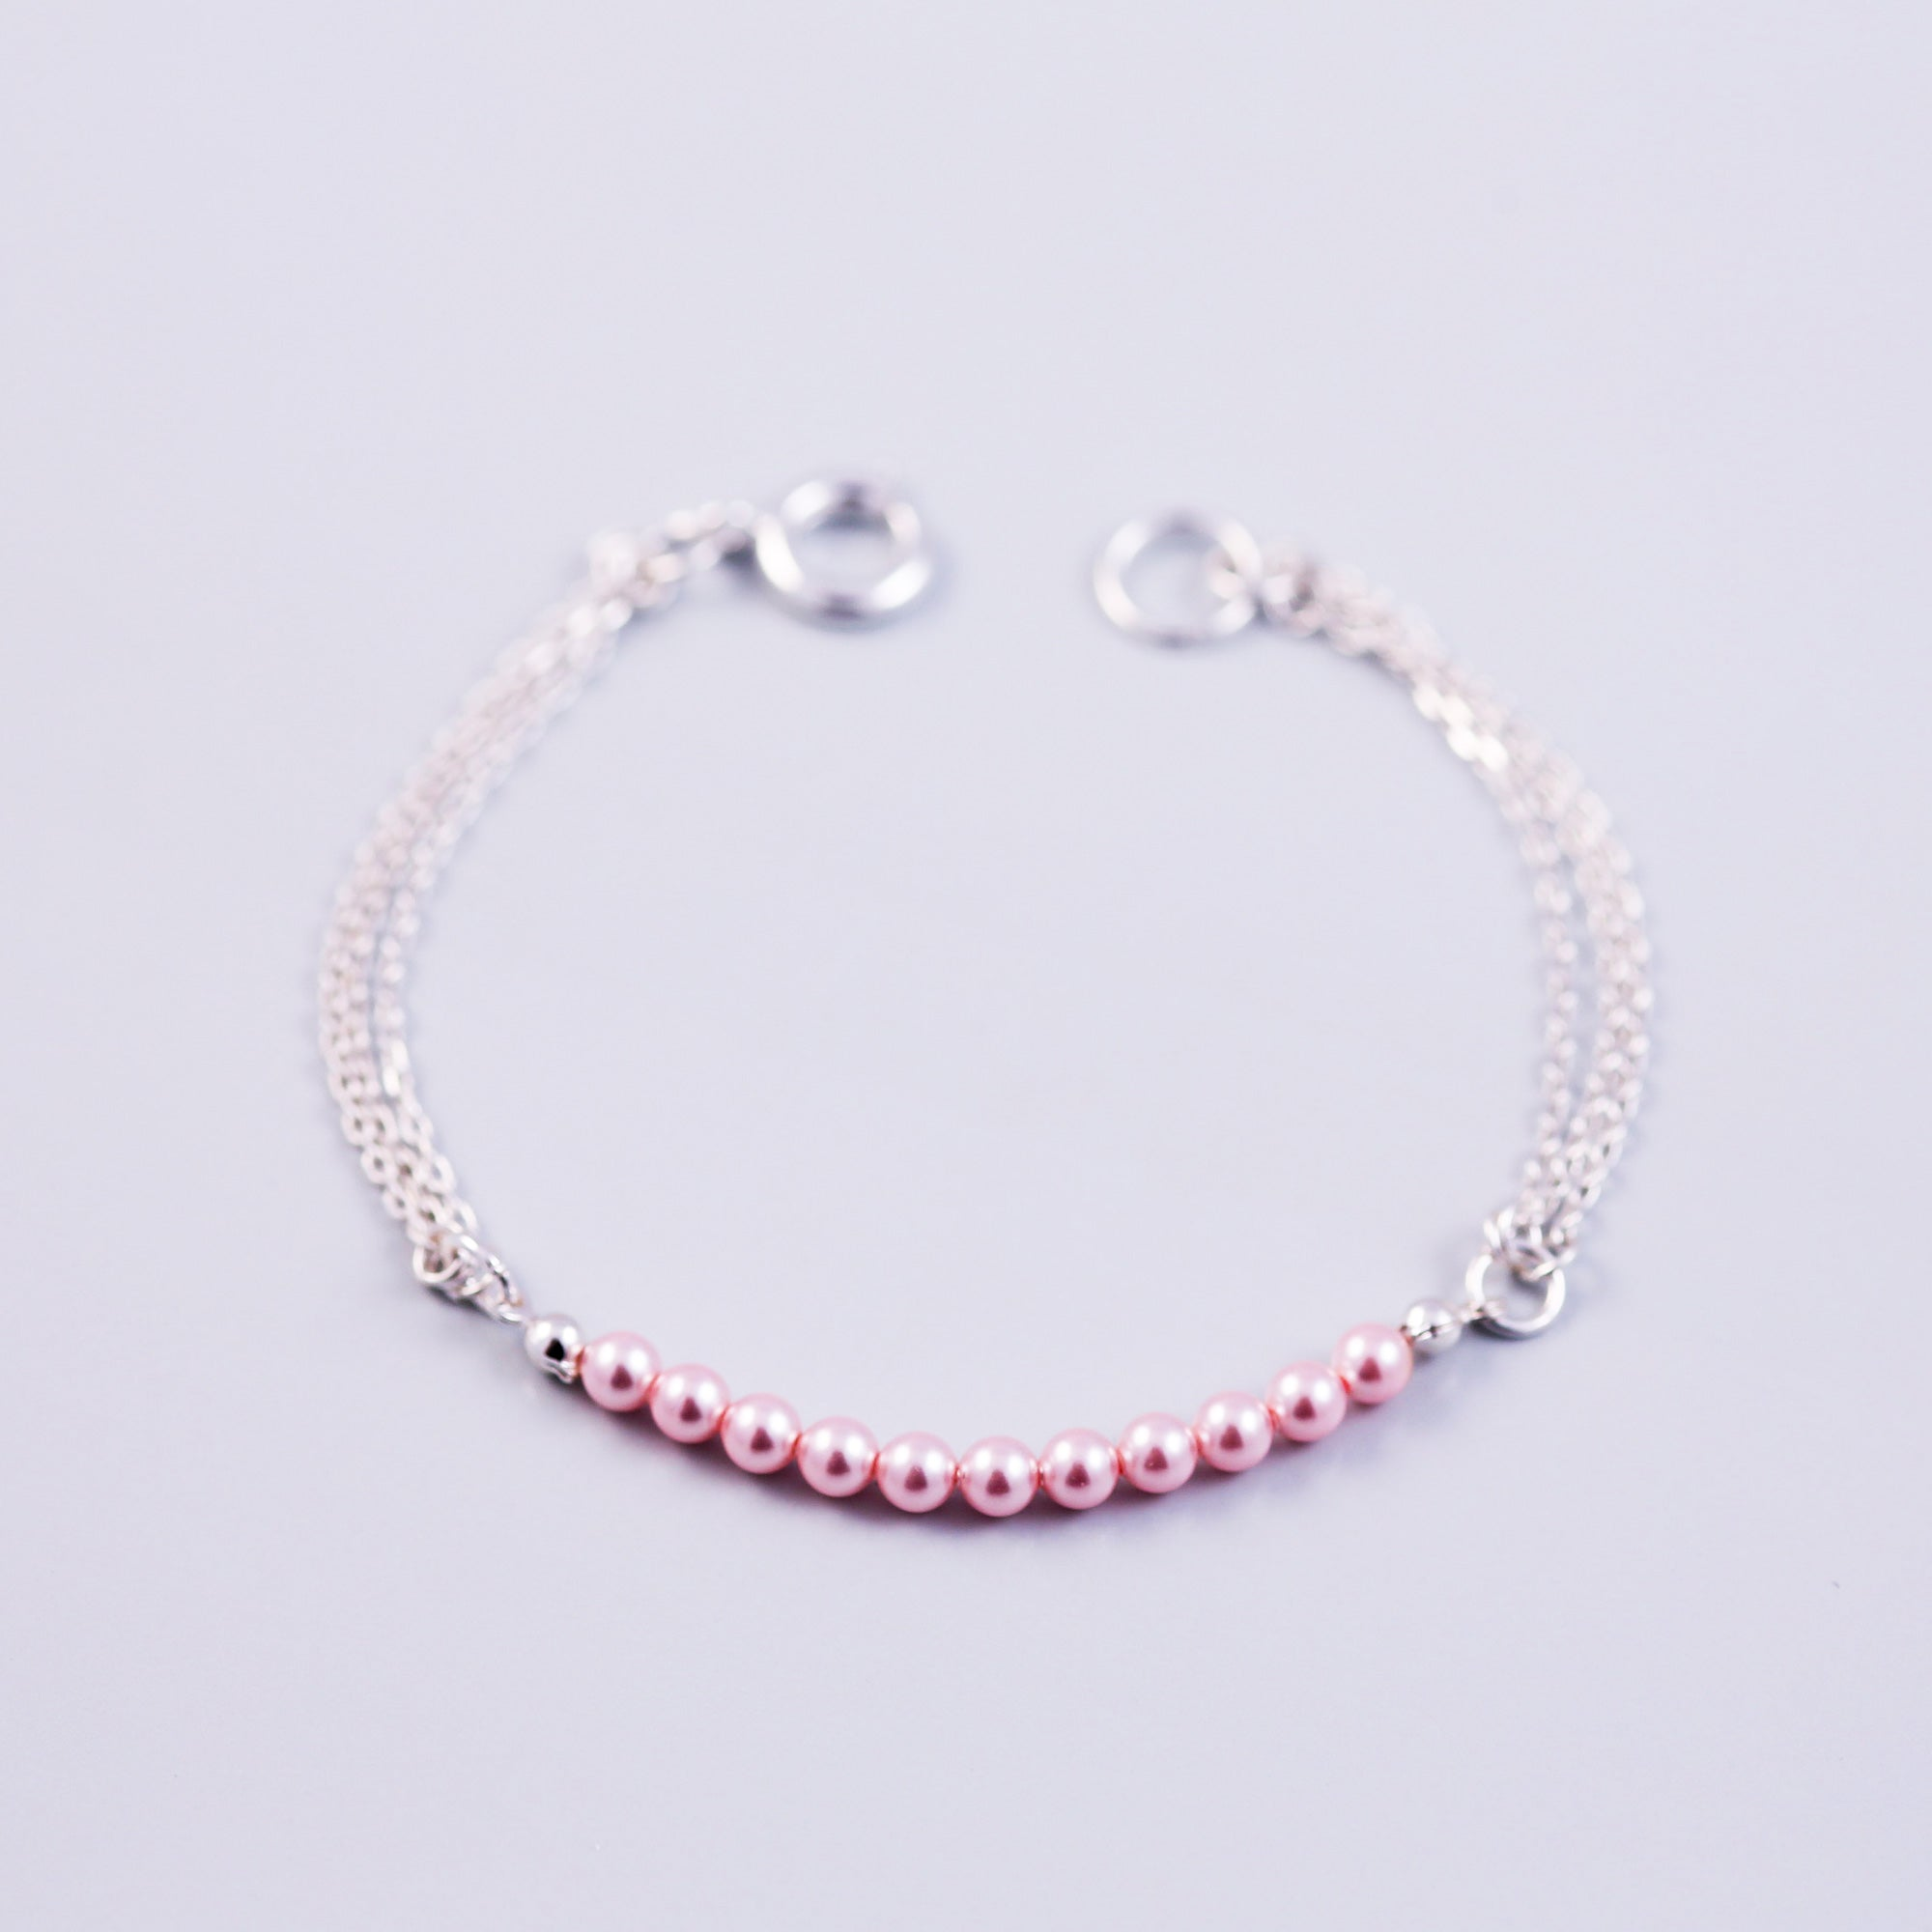 Pearl Bead Bracelet | Cute Friendship Bracelets | Friendship Jewellery | Silver & Light Pink